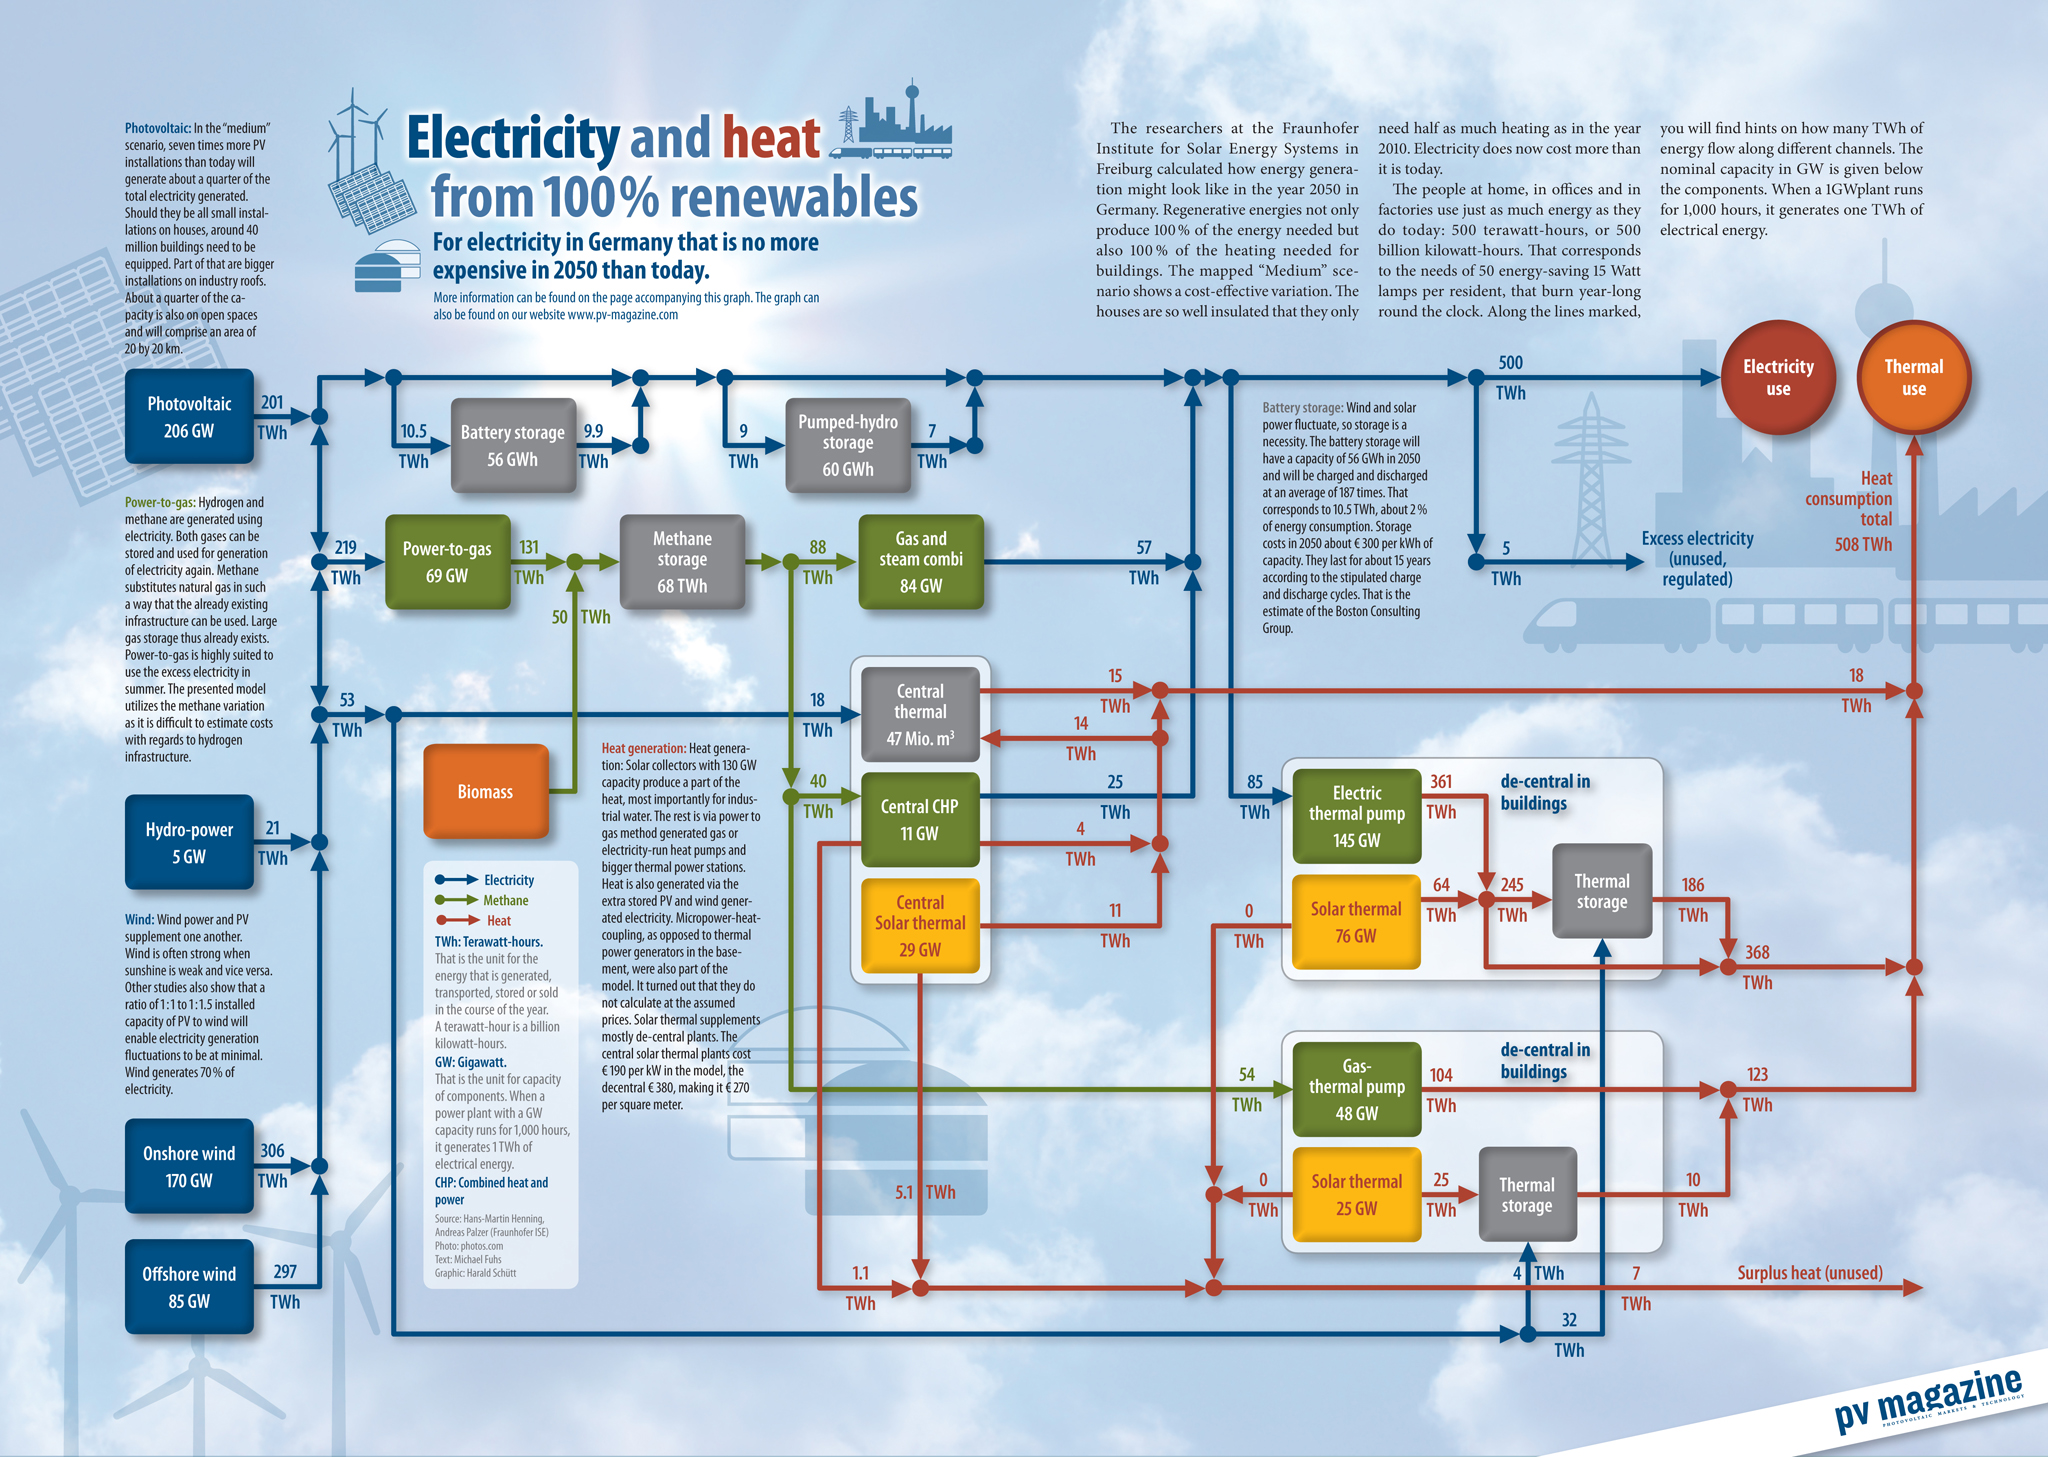 Germany_Electricity_and_heat_from_100__renewables.jpg